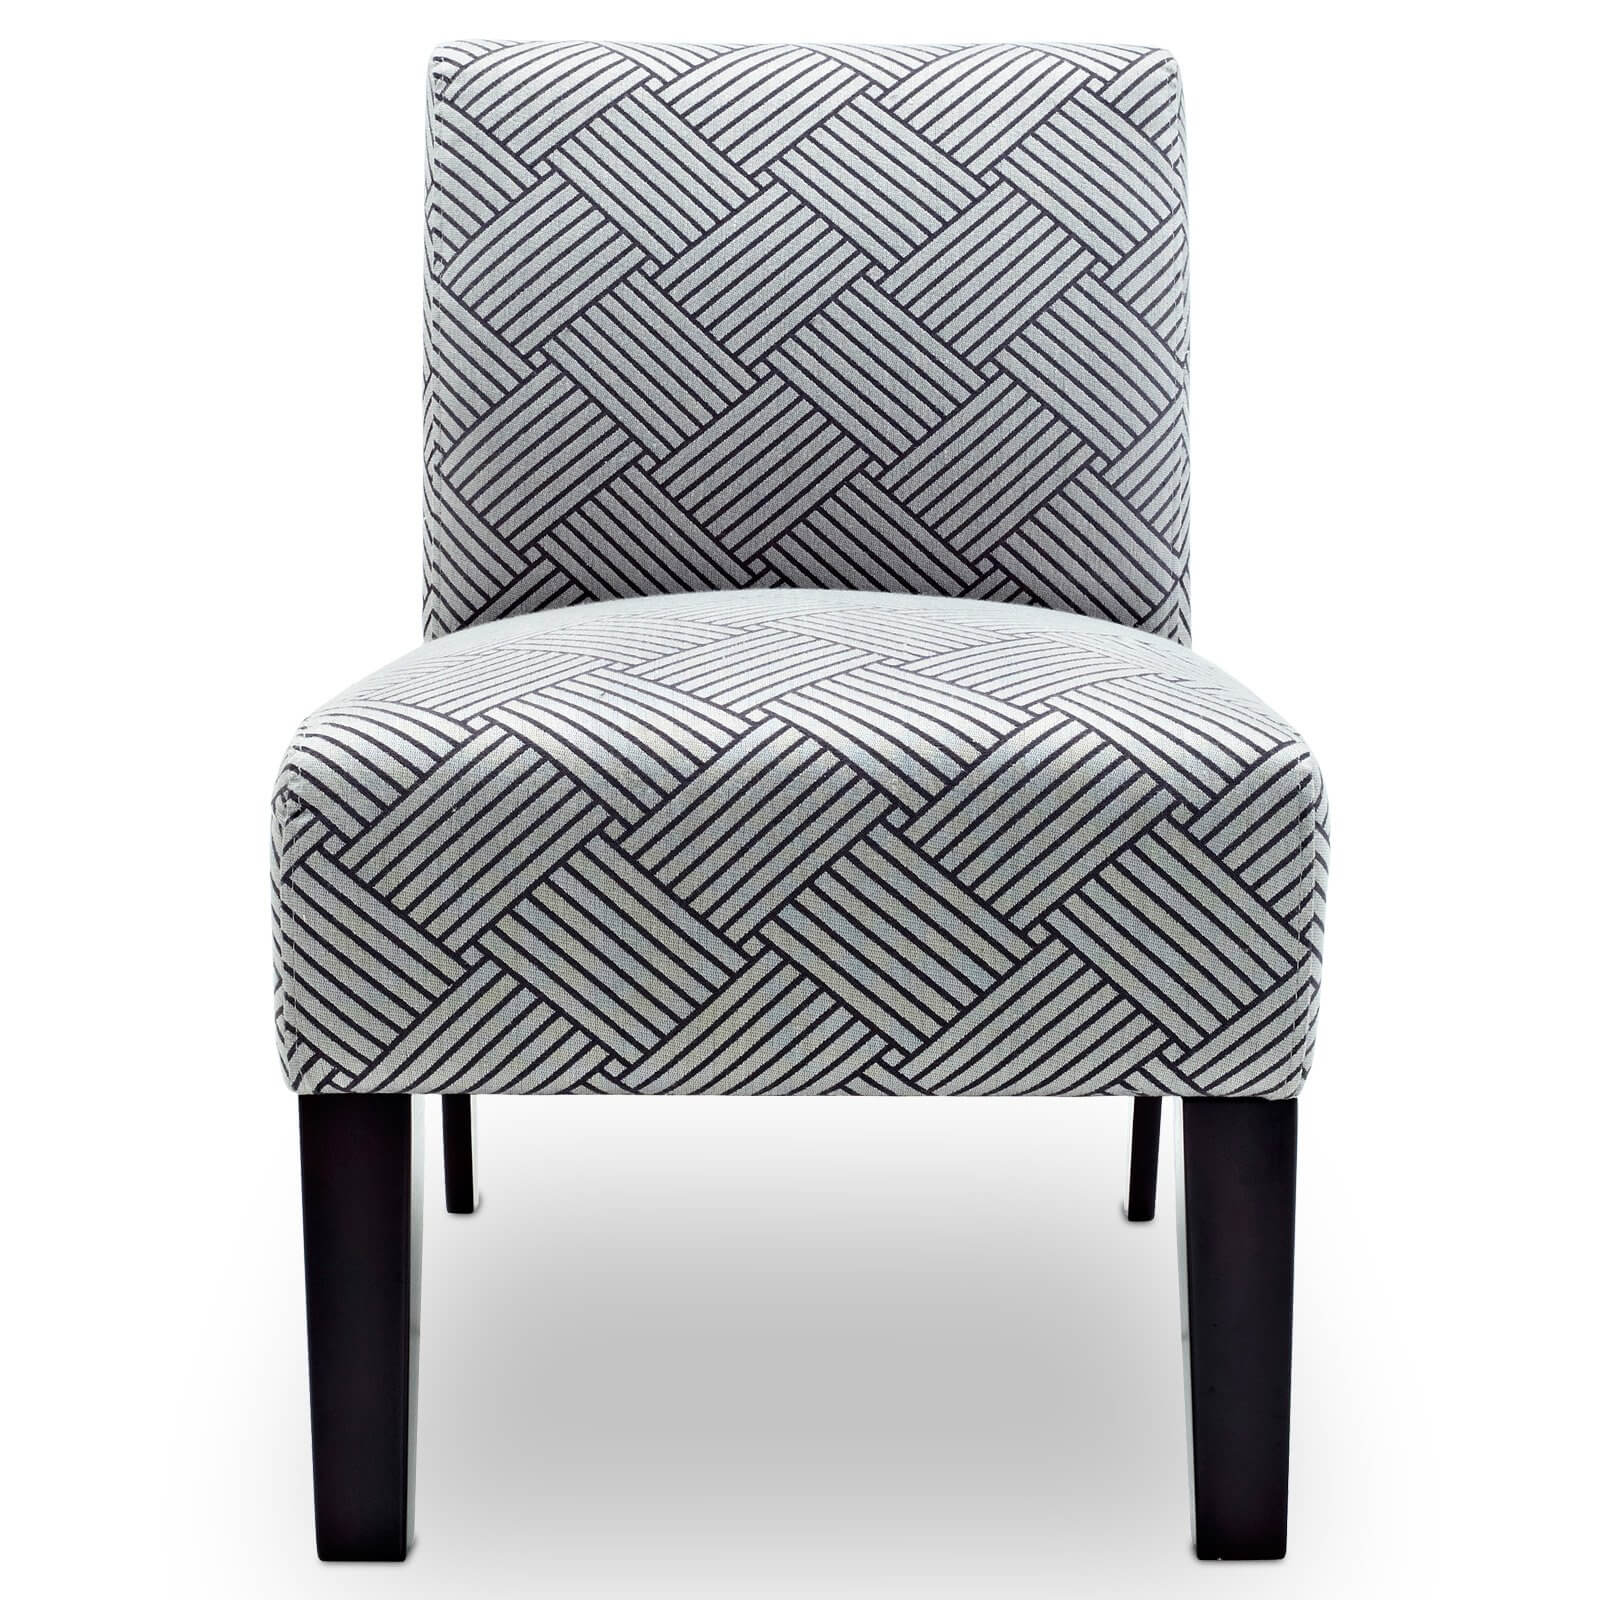 I love the pattern of this accent chair (because I like geometric patterns).  It's an elegant pattern, but this chair definitely requires other larger furniture in the space.